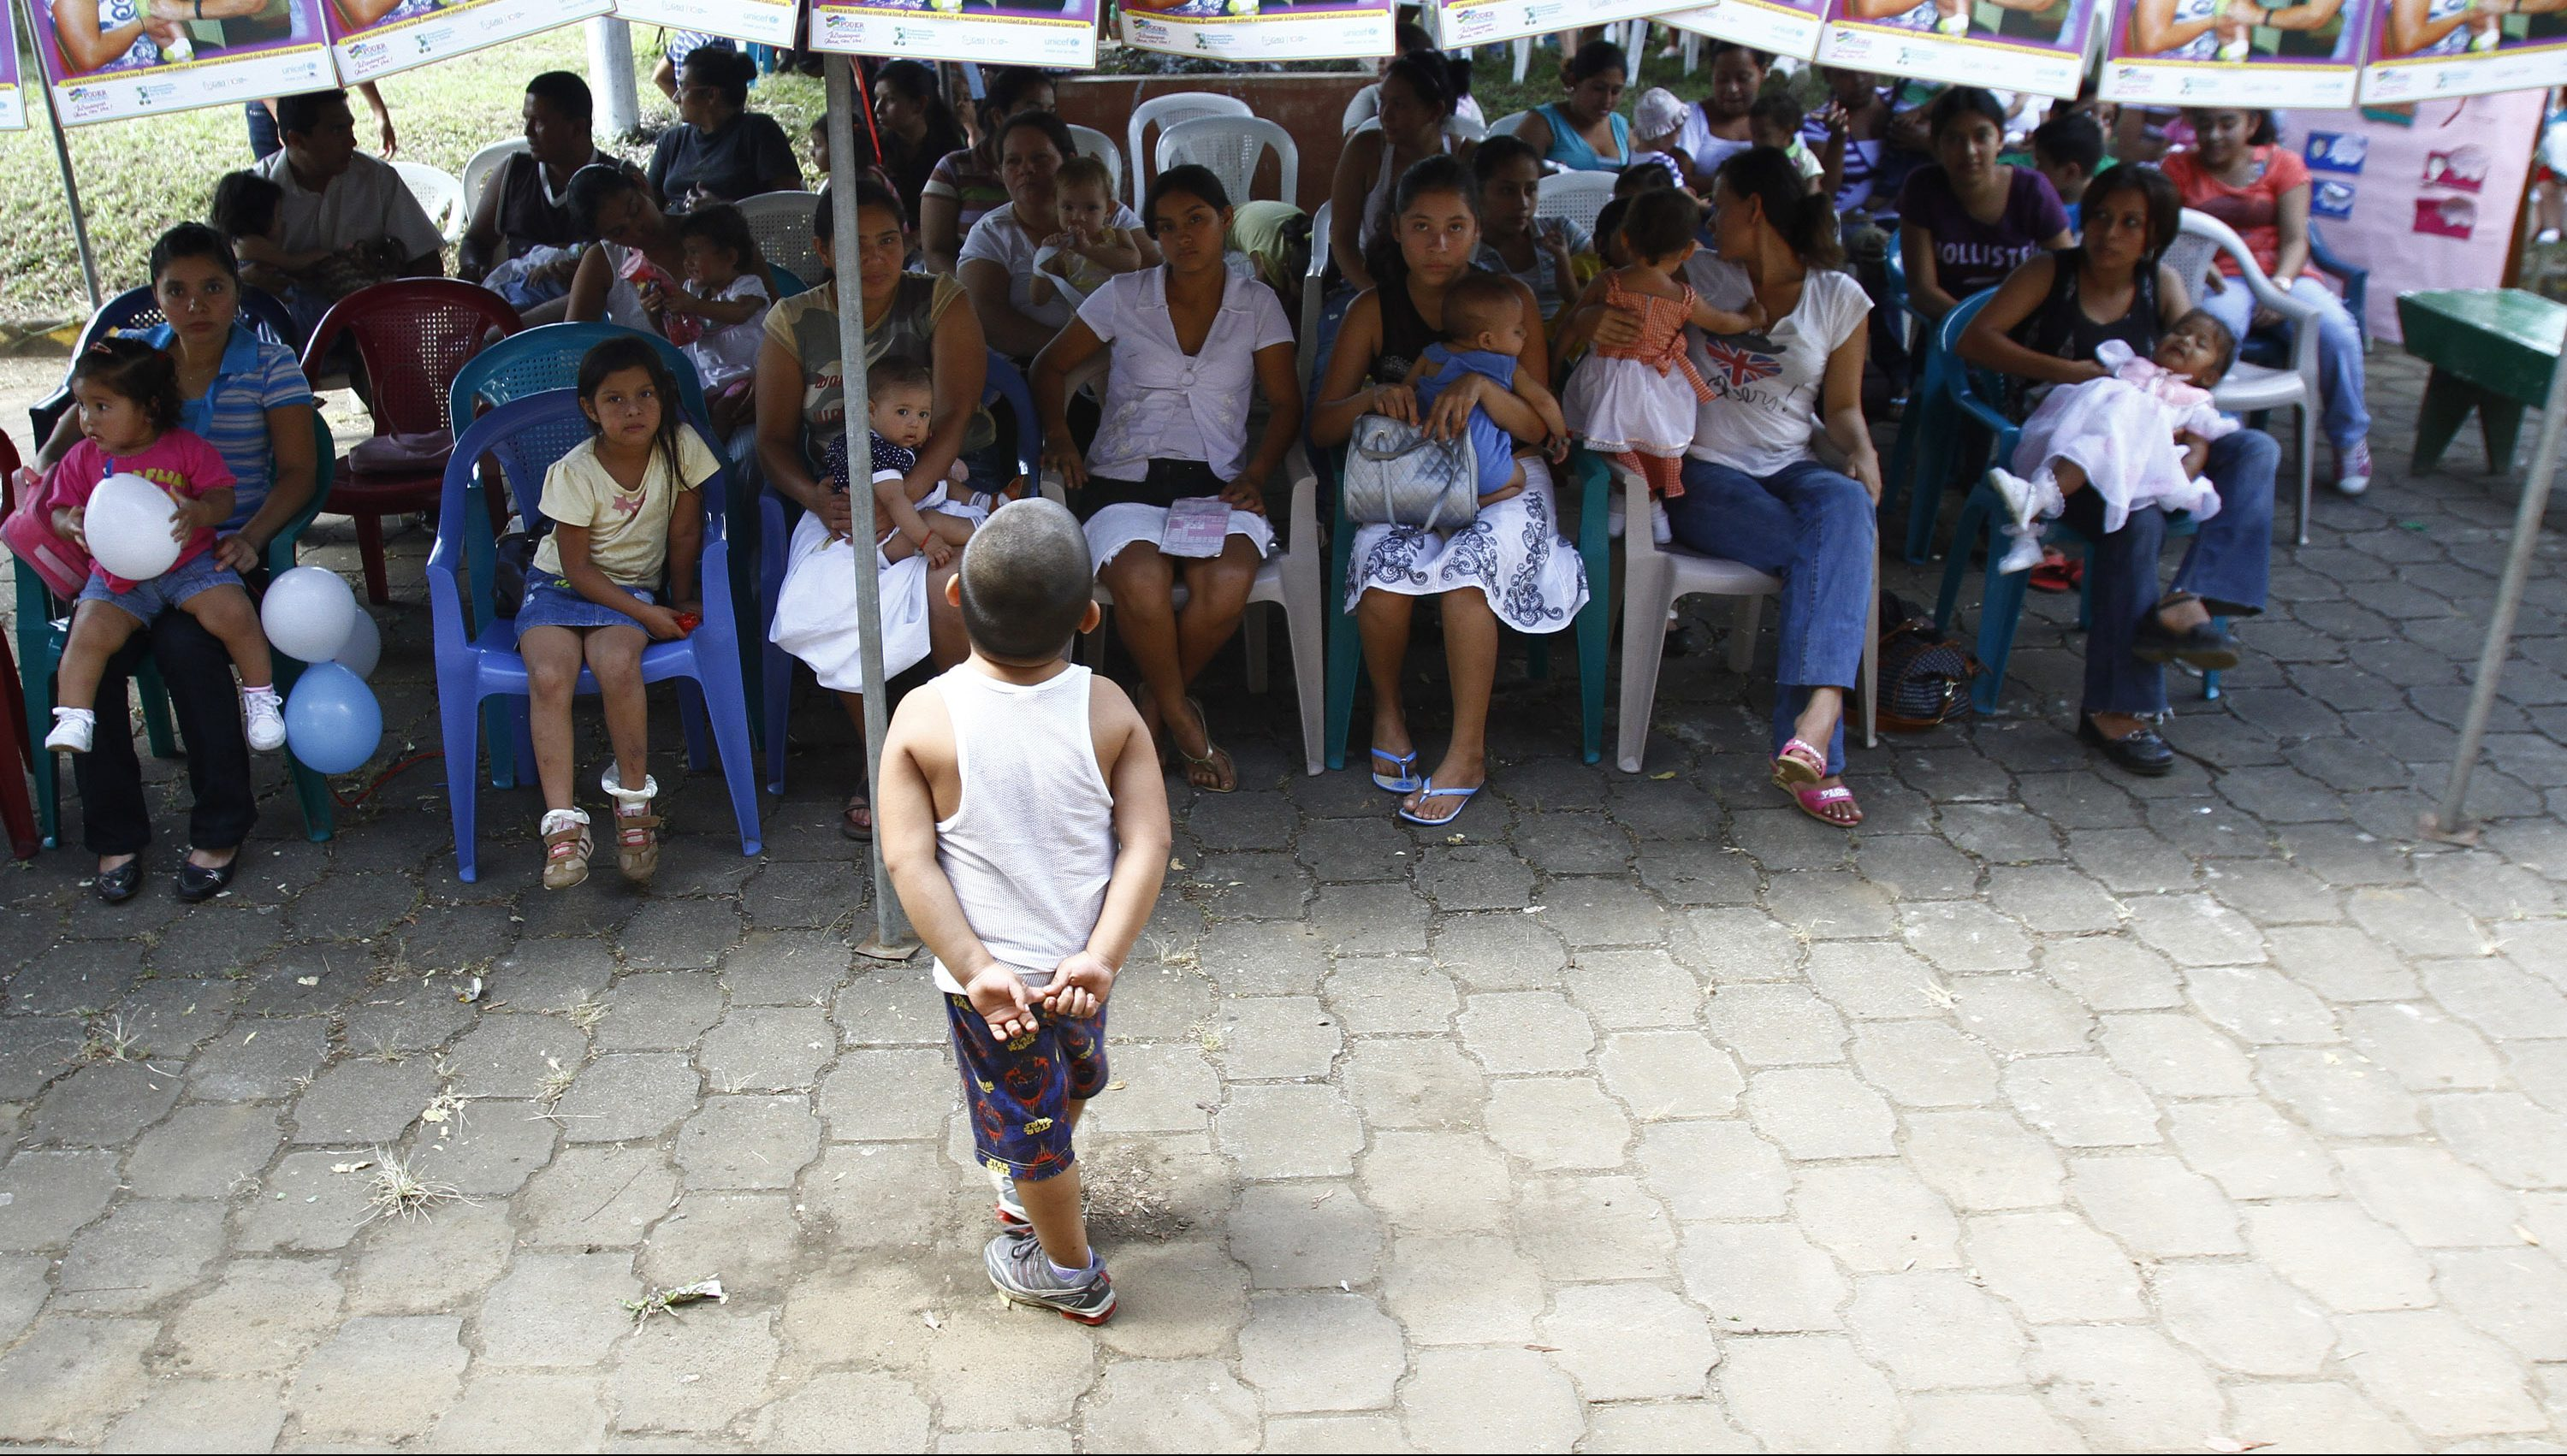 Children wait to be vaccinated against the most deadly forms of pneumonia at Amistad Mexico-Nicaragua Hospital in Ticauntepe town, about 8 miles (13 kilometres) south of Managua, December 12, 2010. The Global Alliance for Vaccines and Immunisation (GAVI) said Nicaragua is the first developing nation to begin vaccinating children with the pneumococcal shots, made by drugmakers Pfizer and GlaxoSmithKline, and another 18 countries will follow in the next few years. Pneumococcal disease, which can cause pneumonia, meningitis and sepsis, kills more than half a million children every year and the vast majority of these deaths are in poorer countries where access to healthcare can be limited and very expensive. REUTERS/Oswaldo Rivas(NICARAGUA - Tags: HEALTH BUSINESS IMAGES OF THE DAY) - GM1E6CD0OCO01